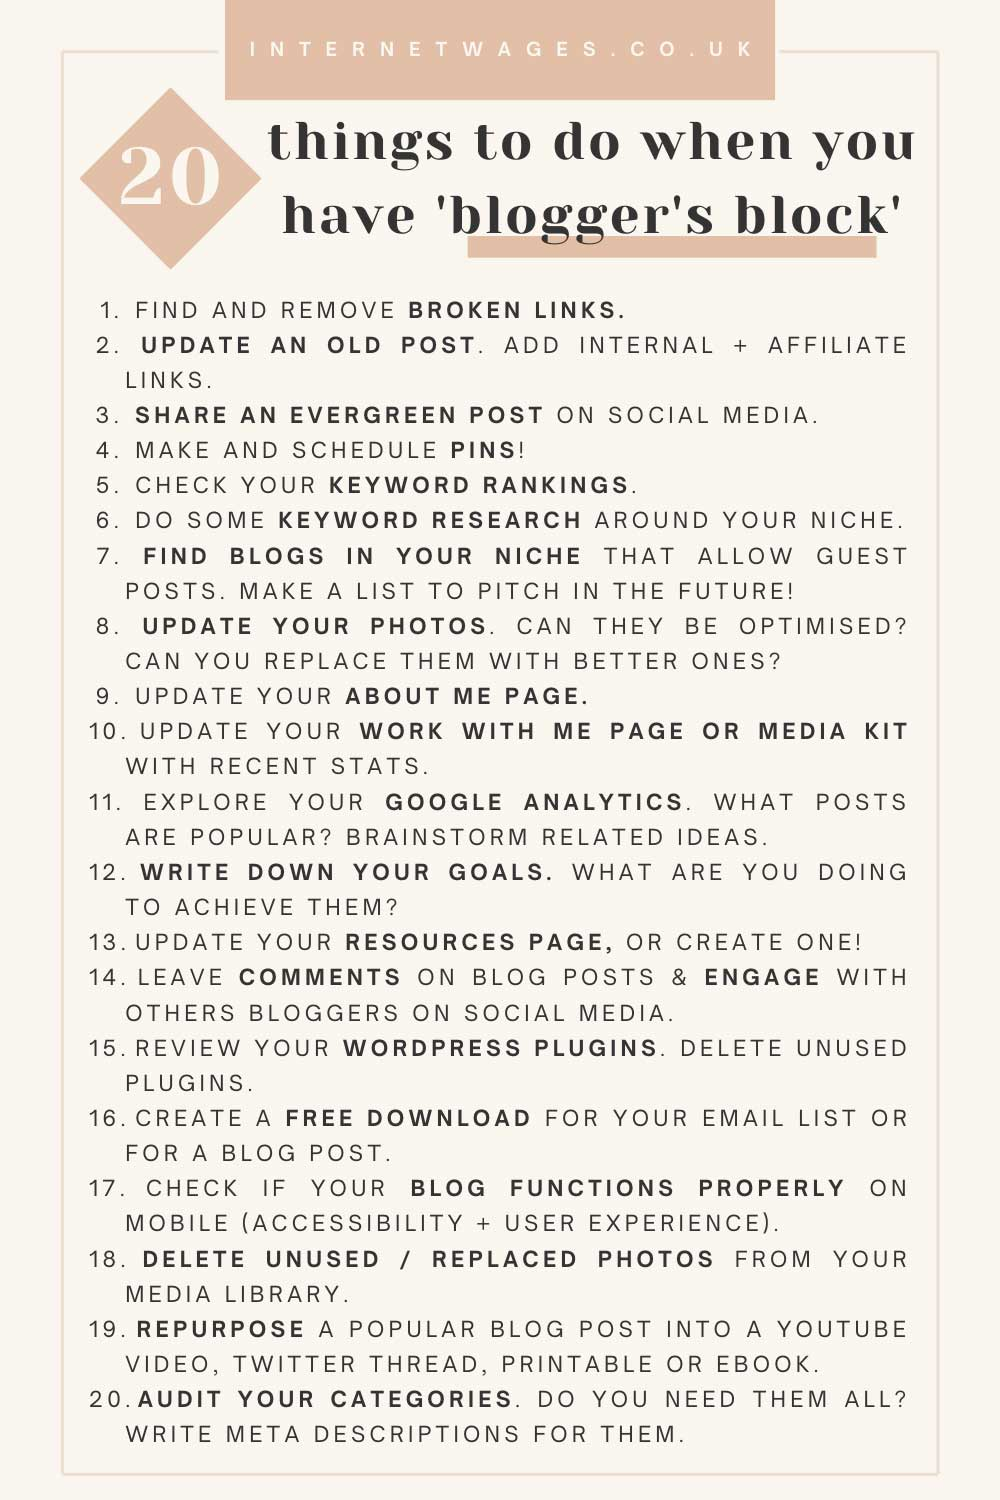 20 Things To Do When You Have Blogger's Block.